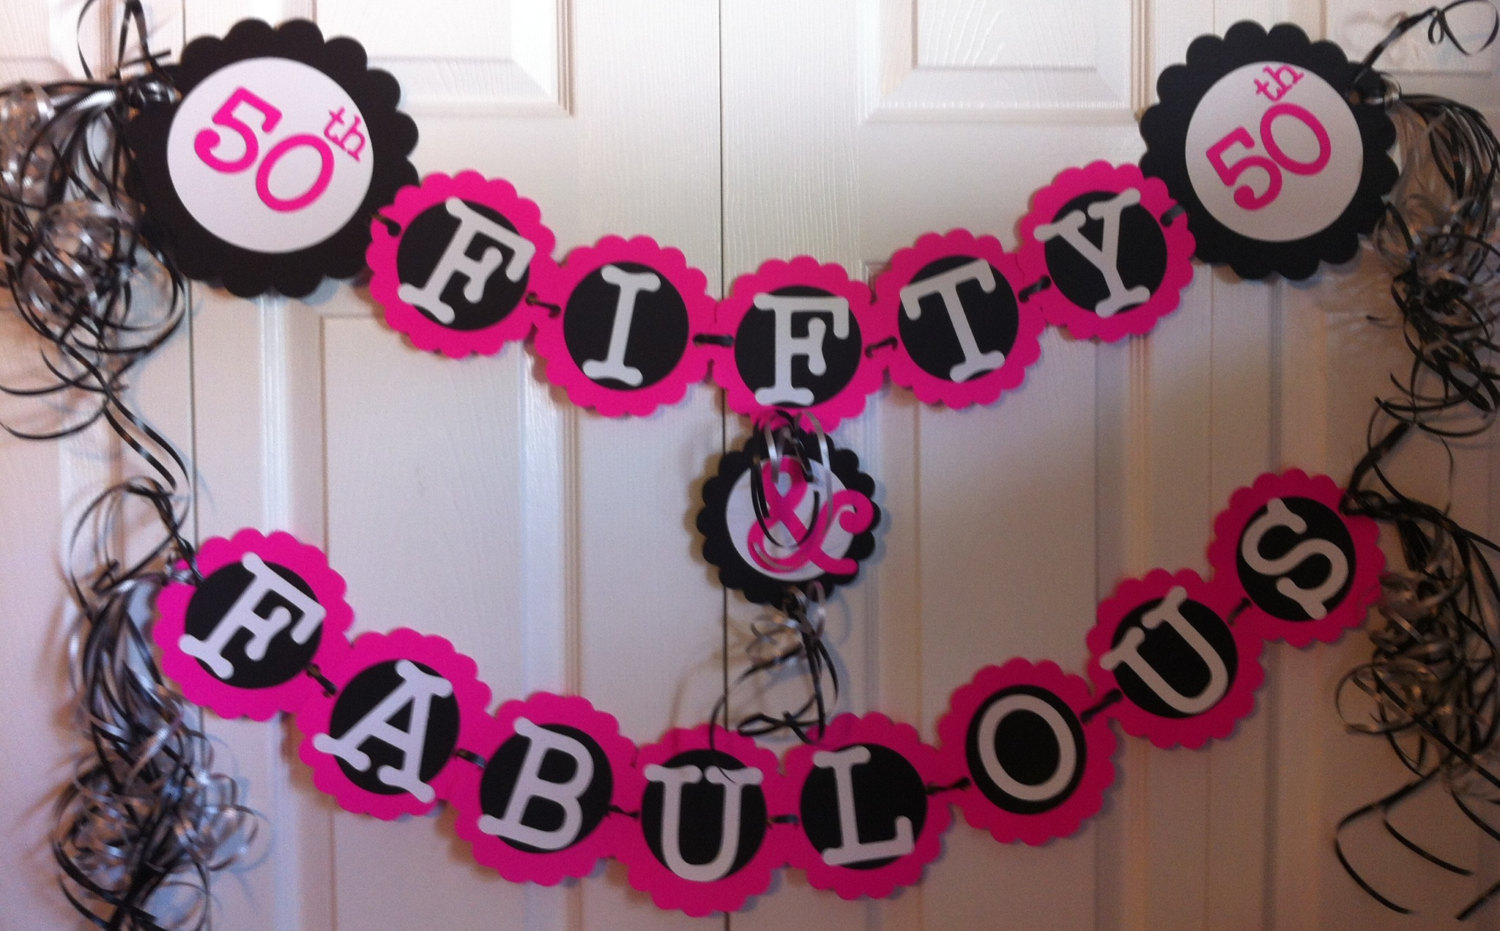 50th birthday design ideas ; 50th-birthday-party-decorations-black-and-white